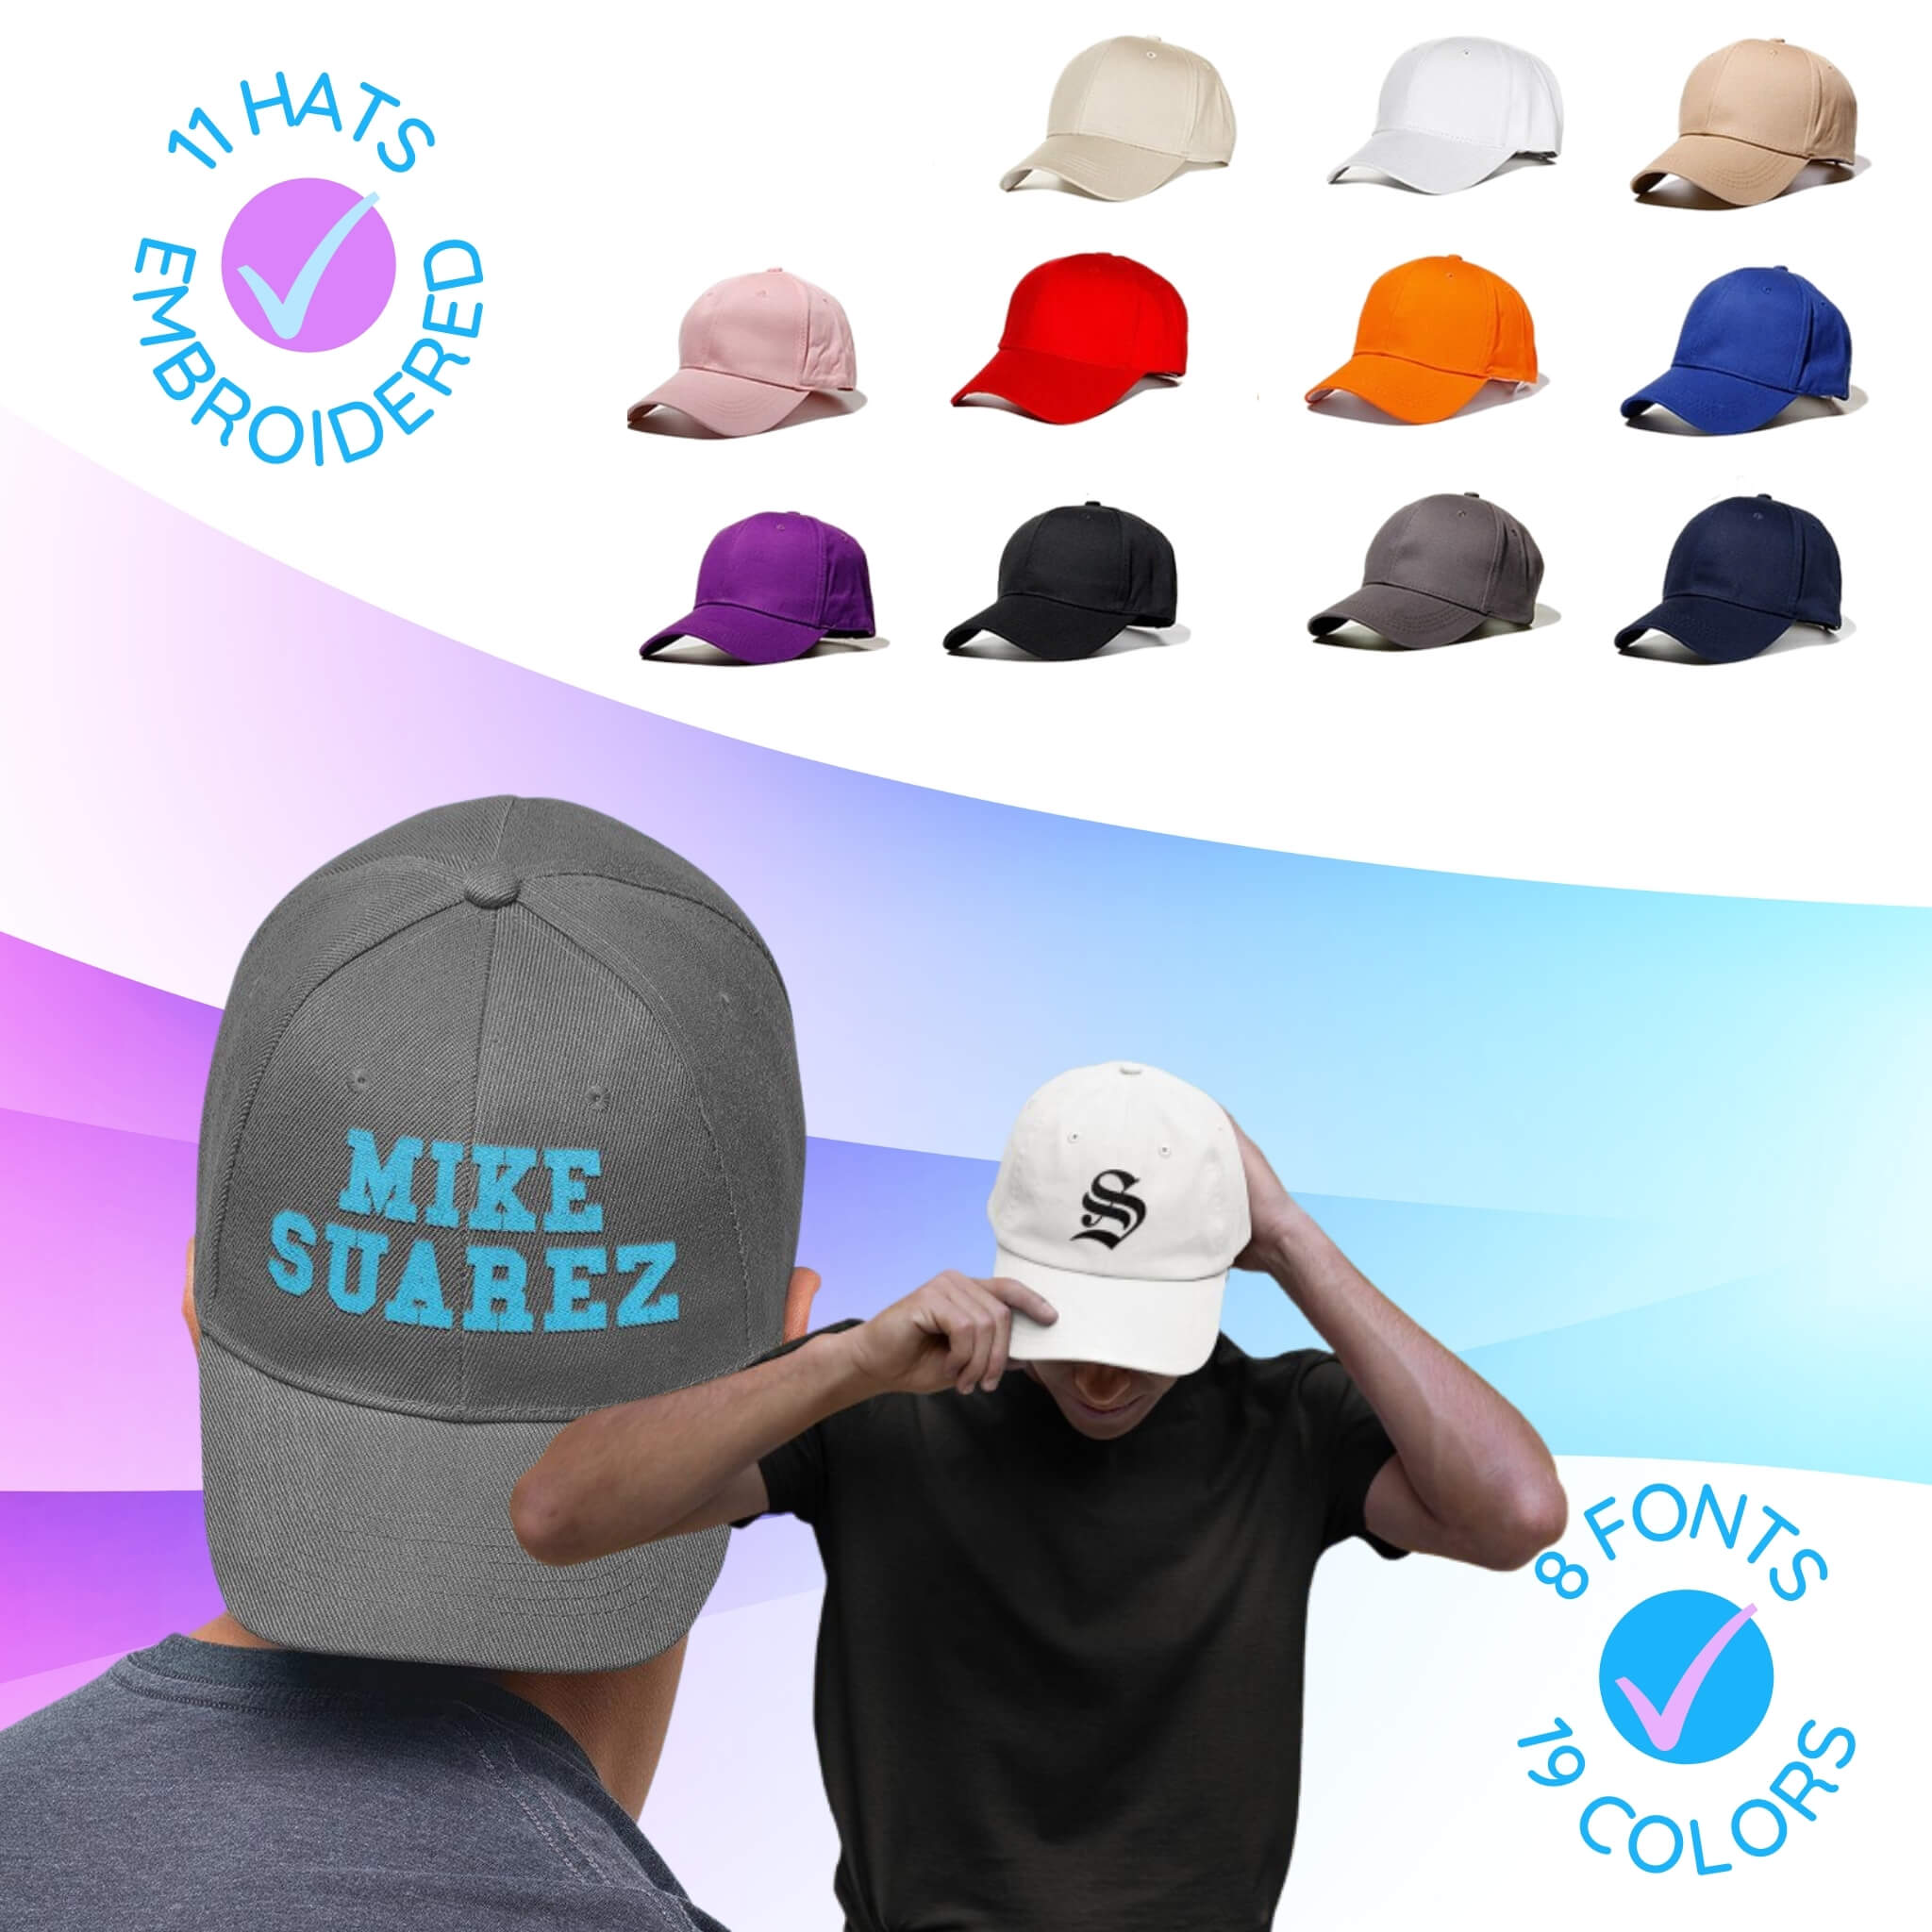 Custom Embroidered Baseball Hats. Design Your Own Personalized Hat